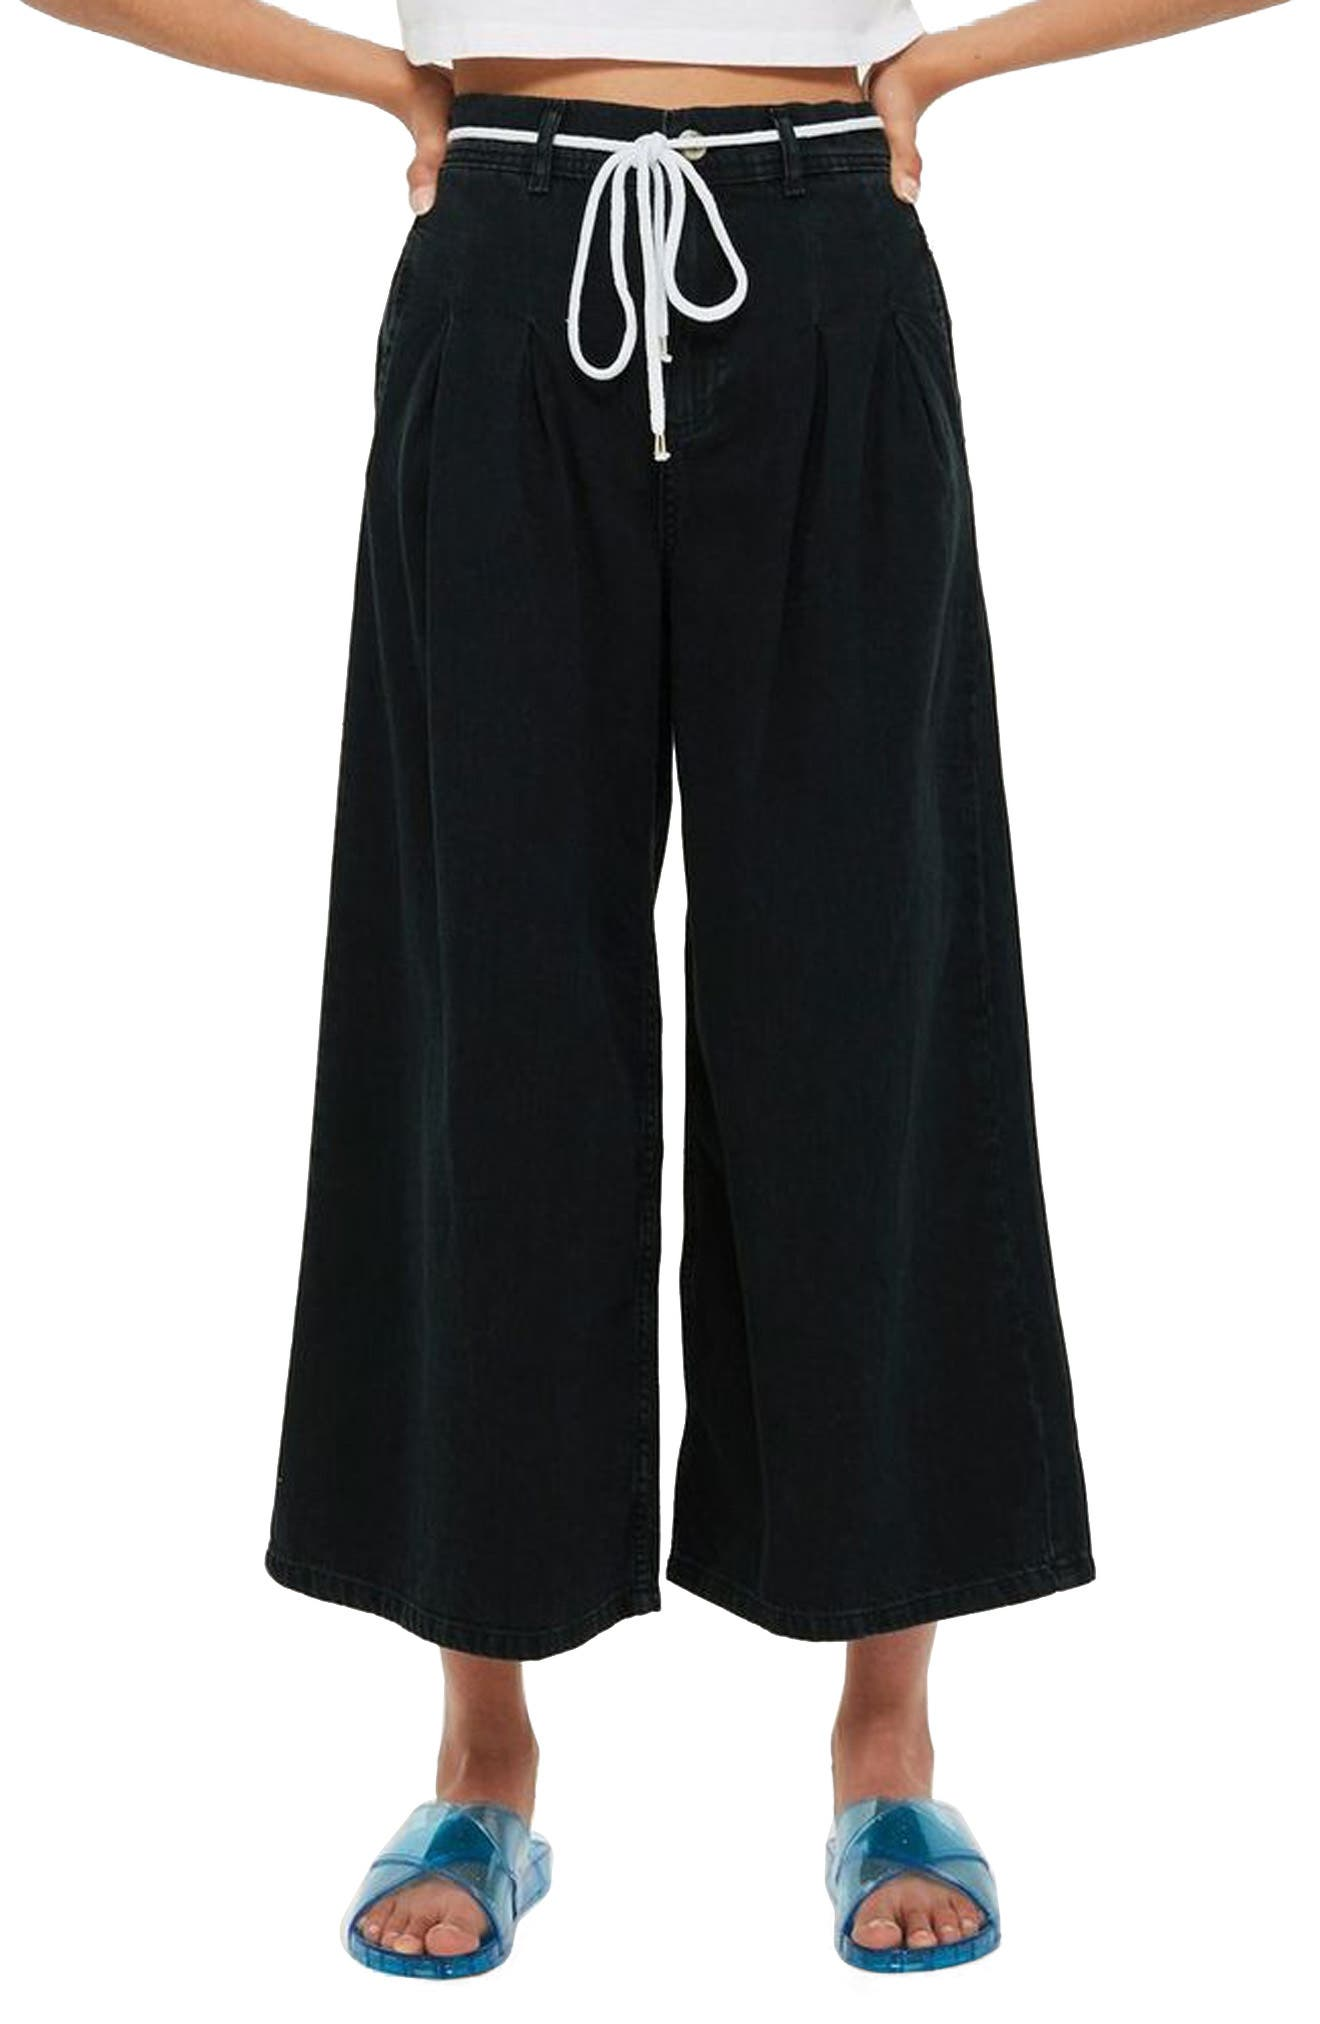 MOTO Pleated Tie Crop Jeans,                         Main,                         color, Washed Black